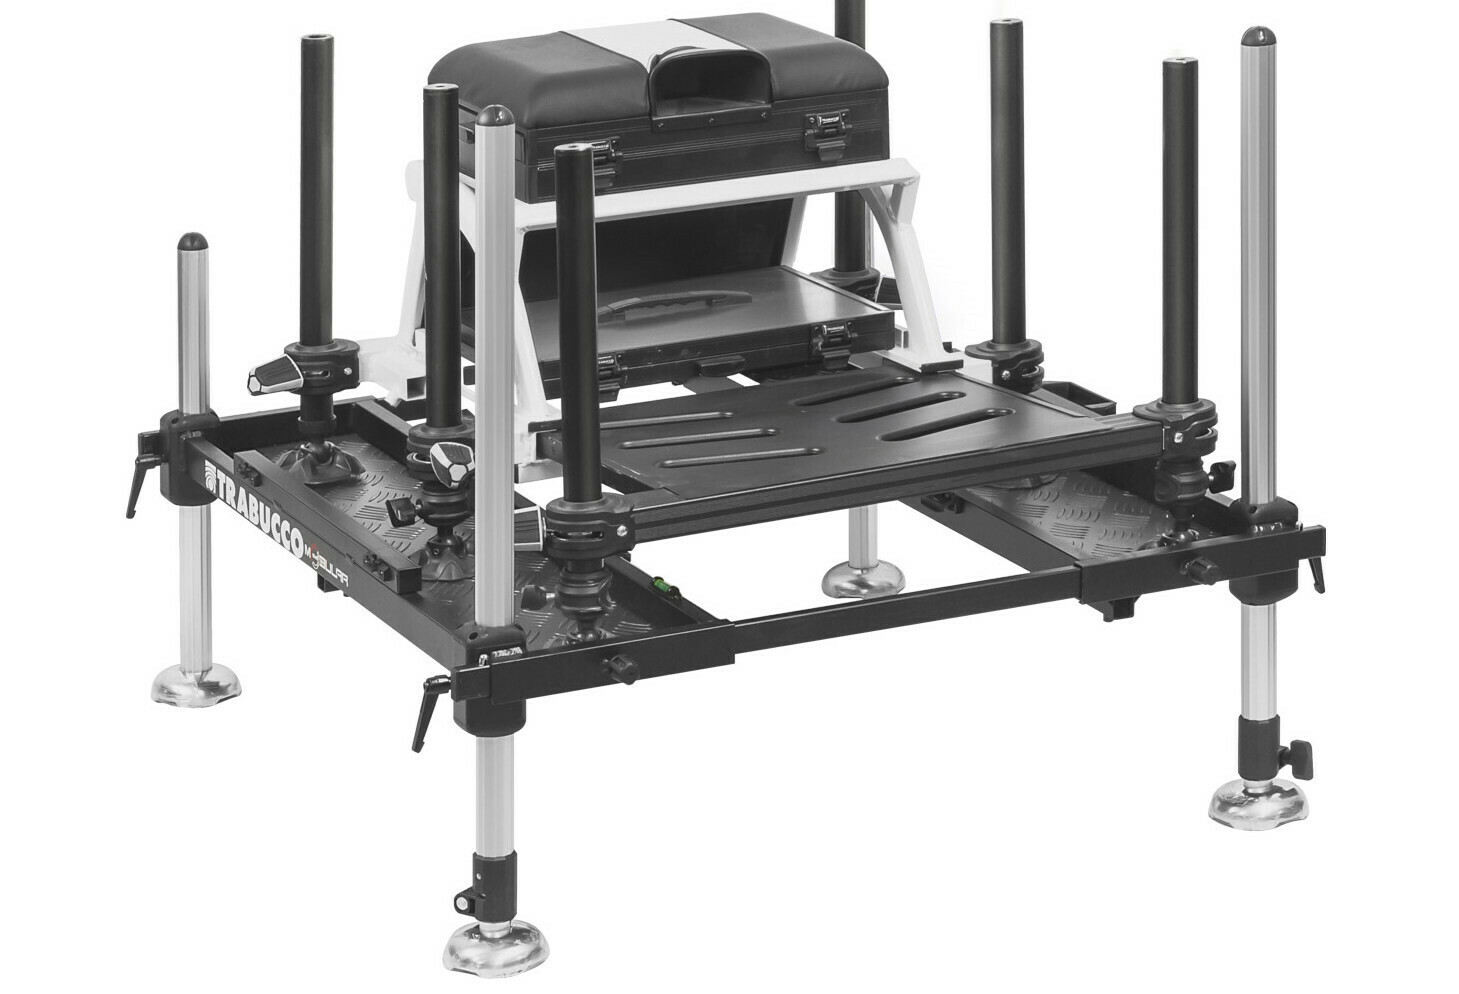 GNT TRANSFORMER FOOT PLATE, can be folded like a suitcase, fits any box